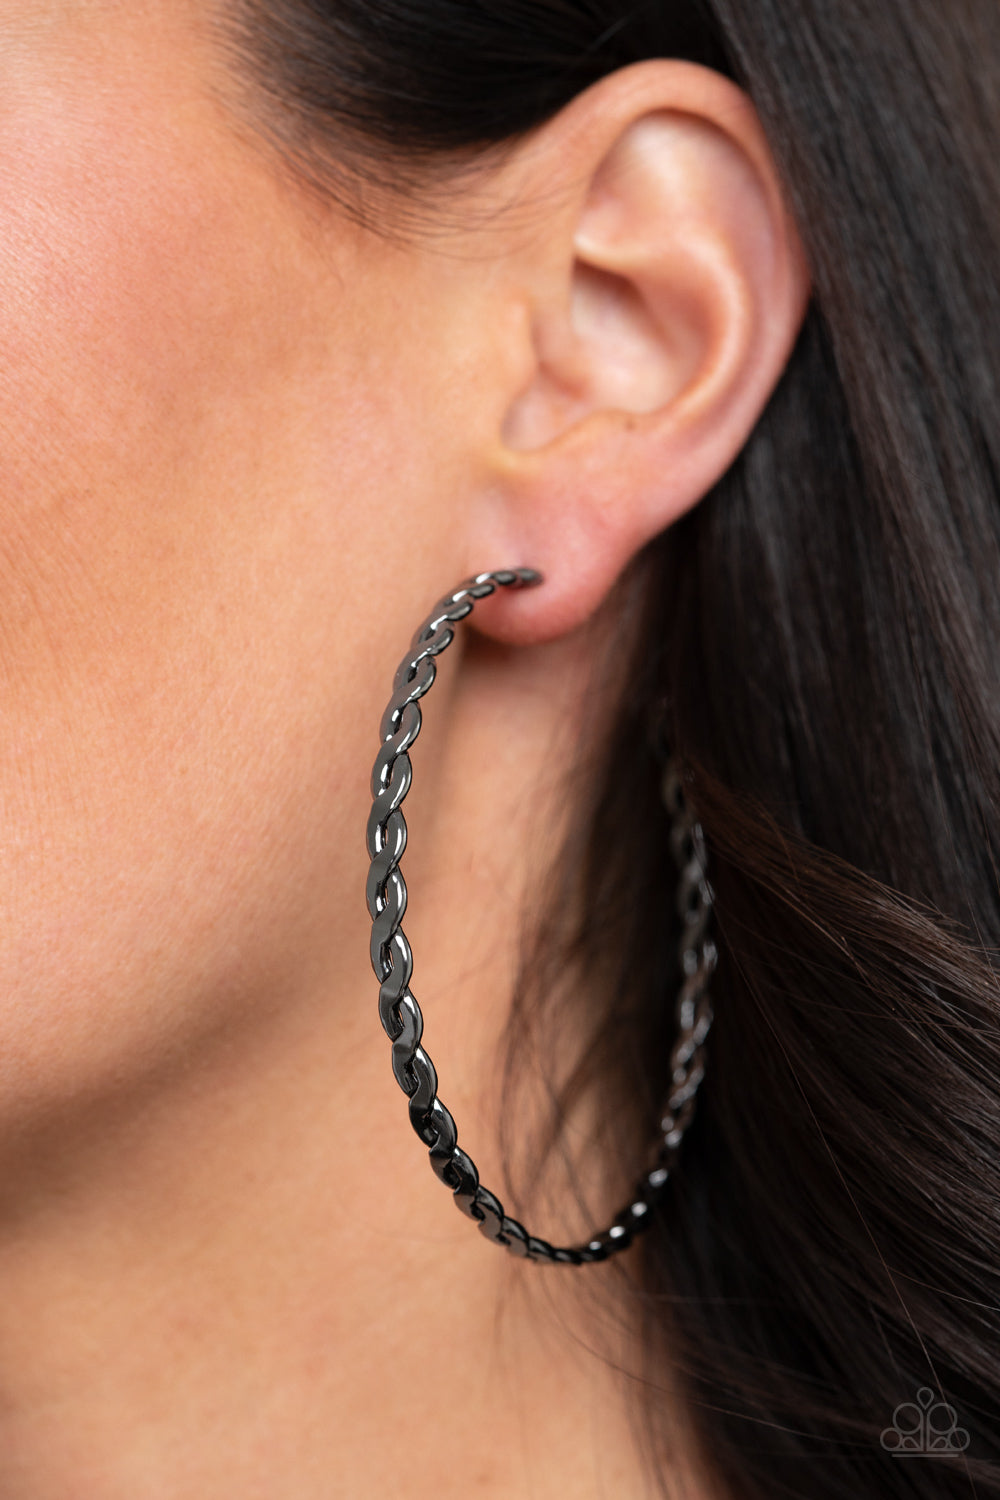 Infinite Twist - Black Earrings - Paparazzi Accessories